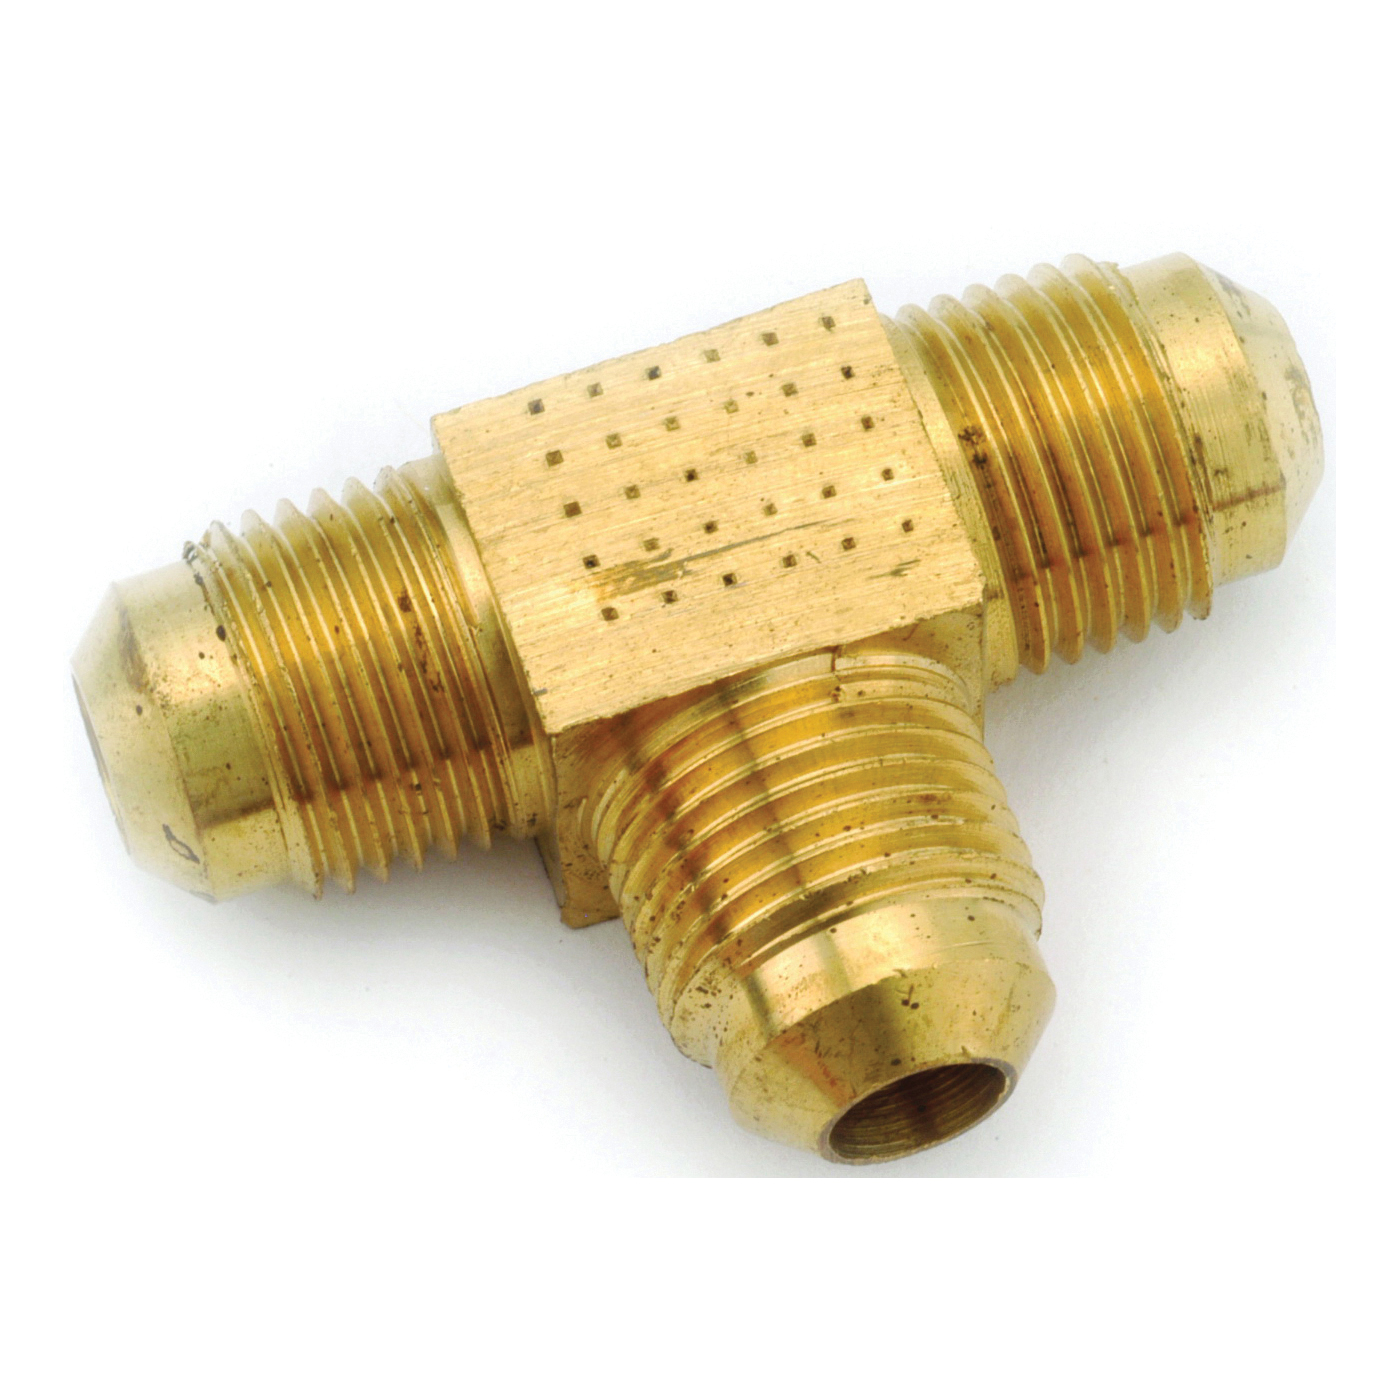 Picture of Anderson Metals 754044-04 Tube Union Tee, 1/4 in, Flare, Brass